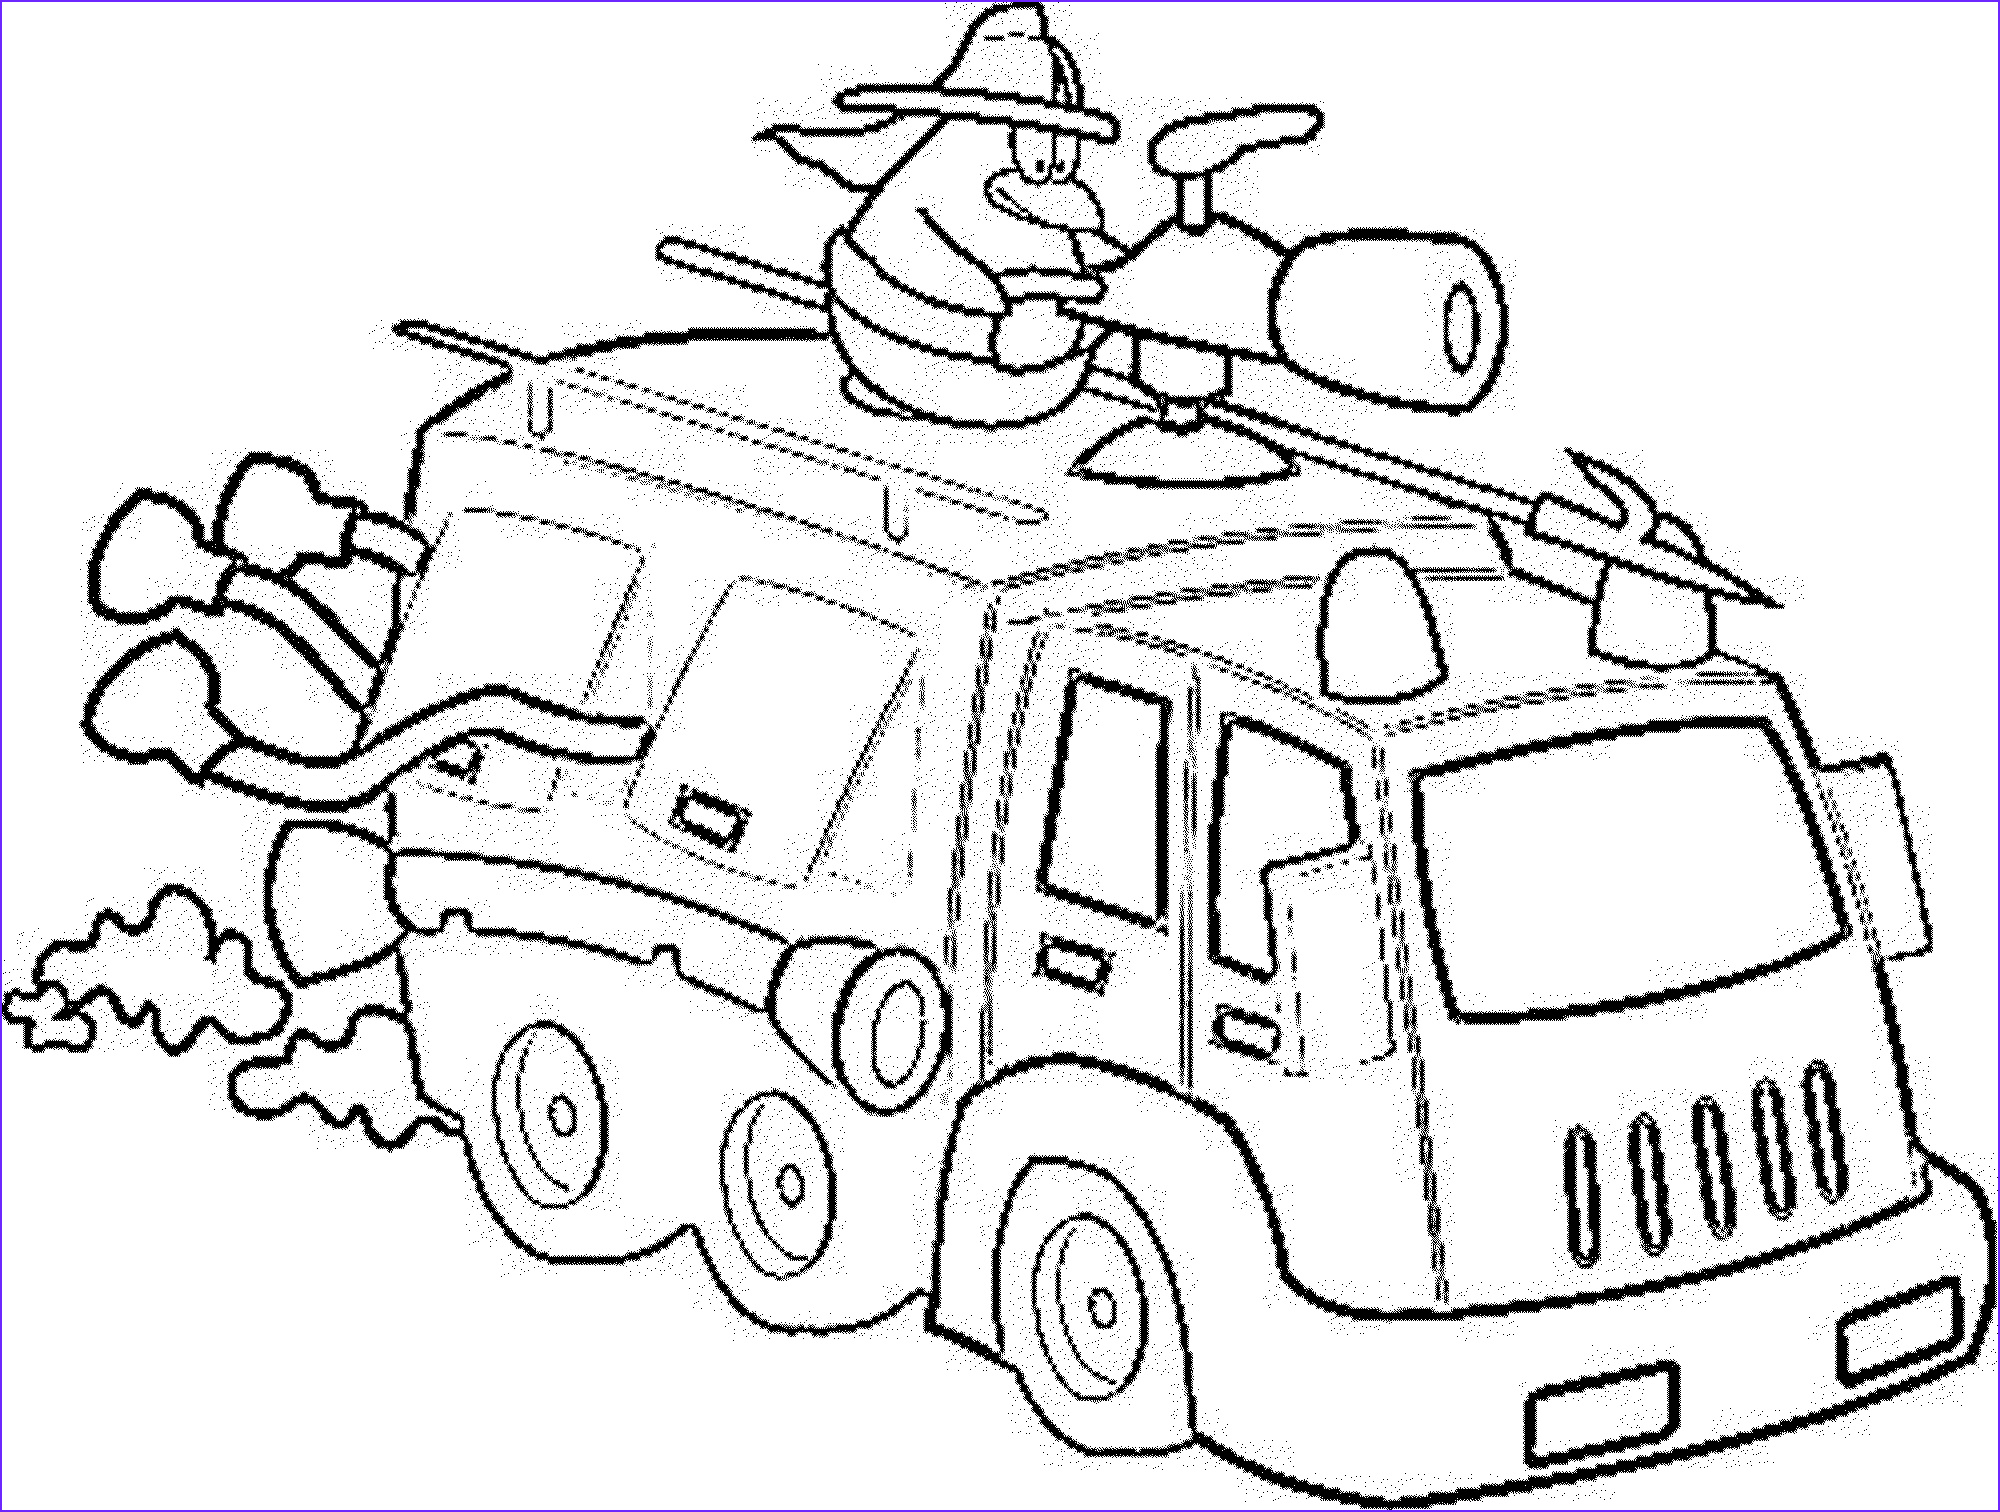 Fire Truck Coloring Pages Cool Image Print & Download Educational Fire Truck Coloring Pages